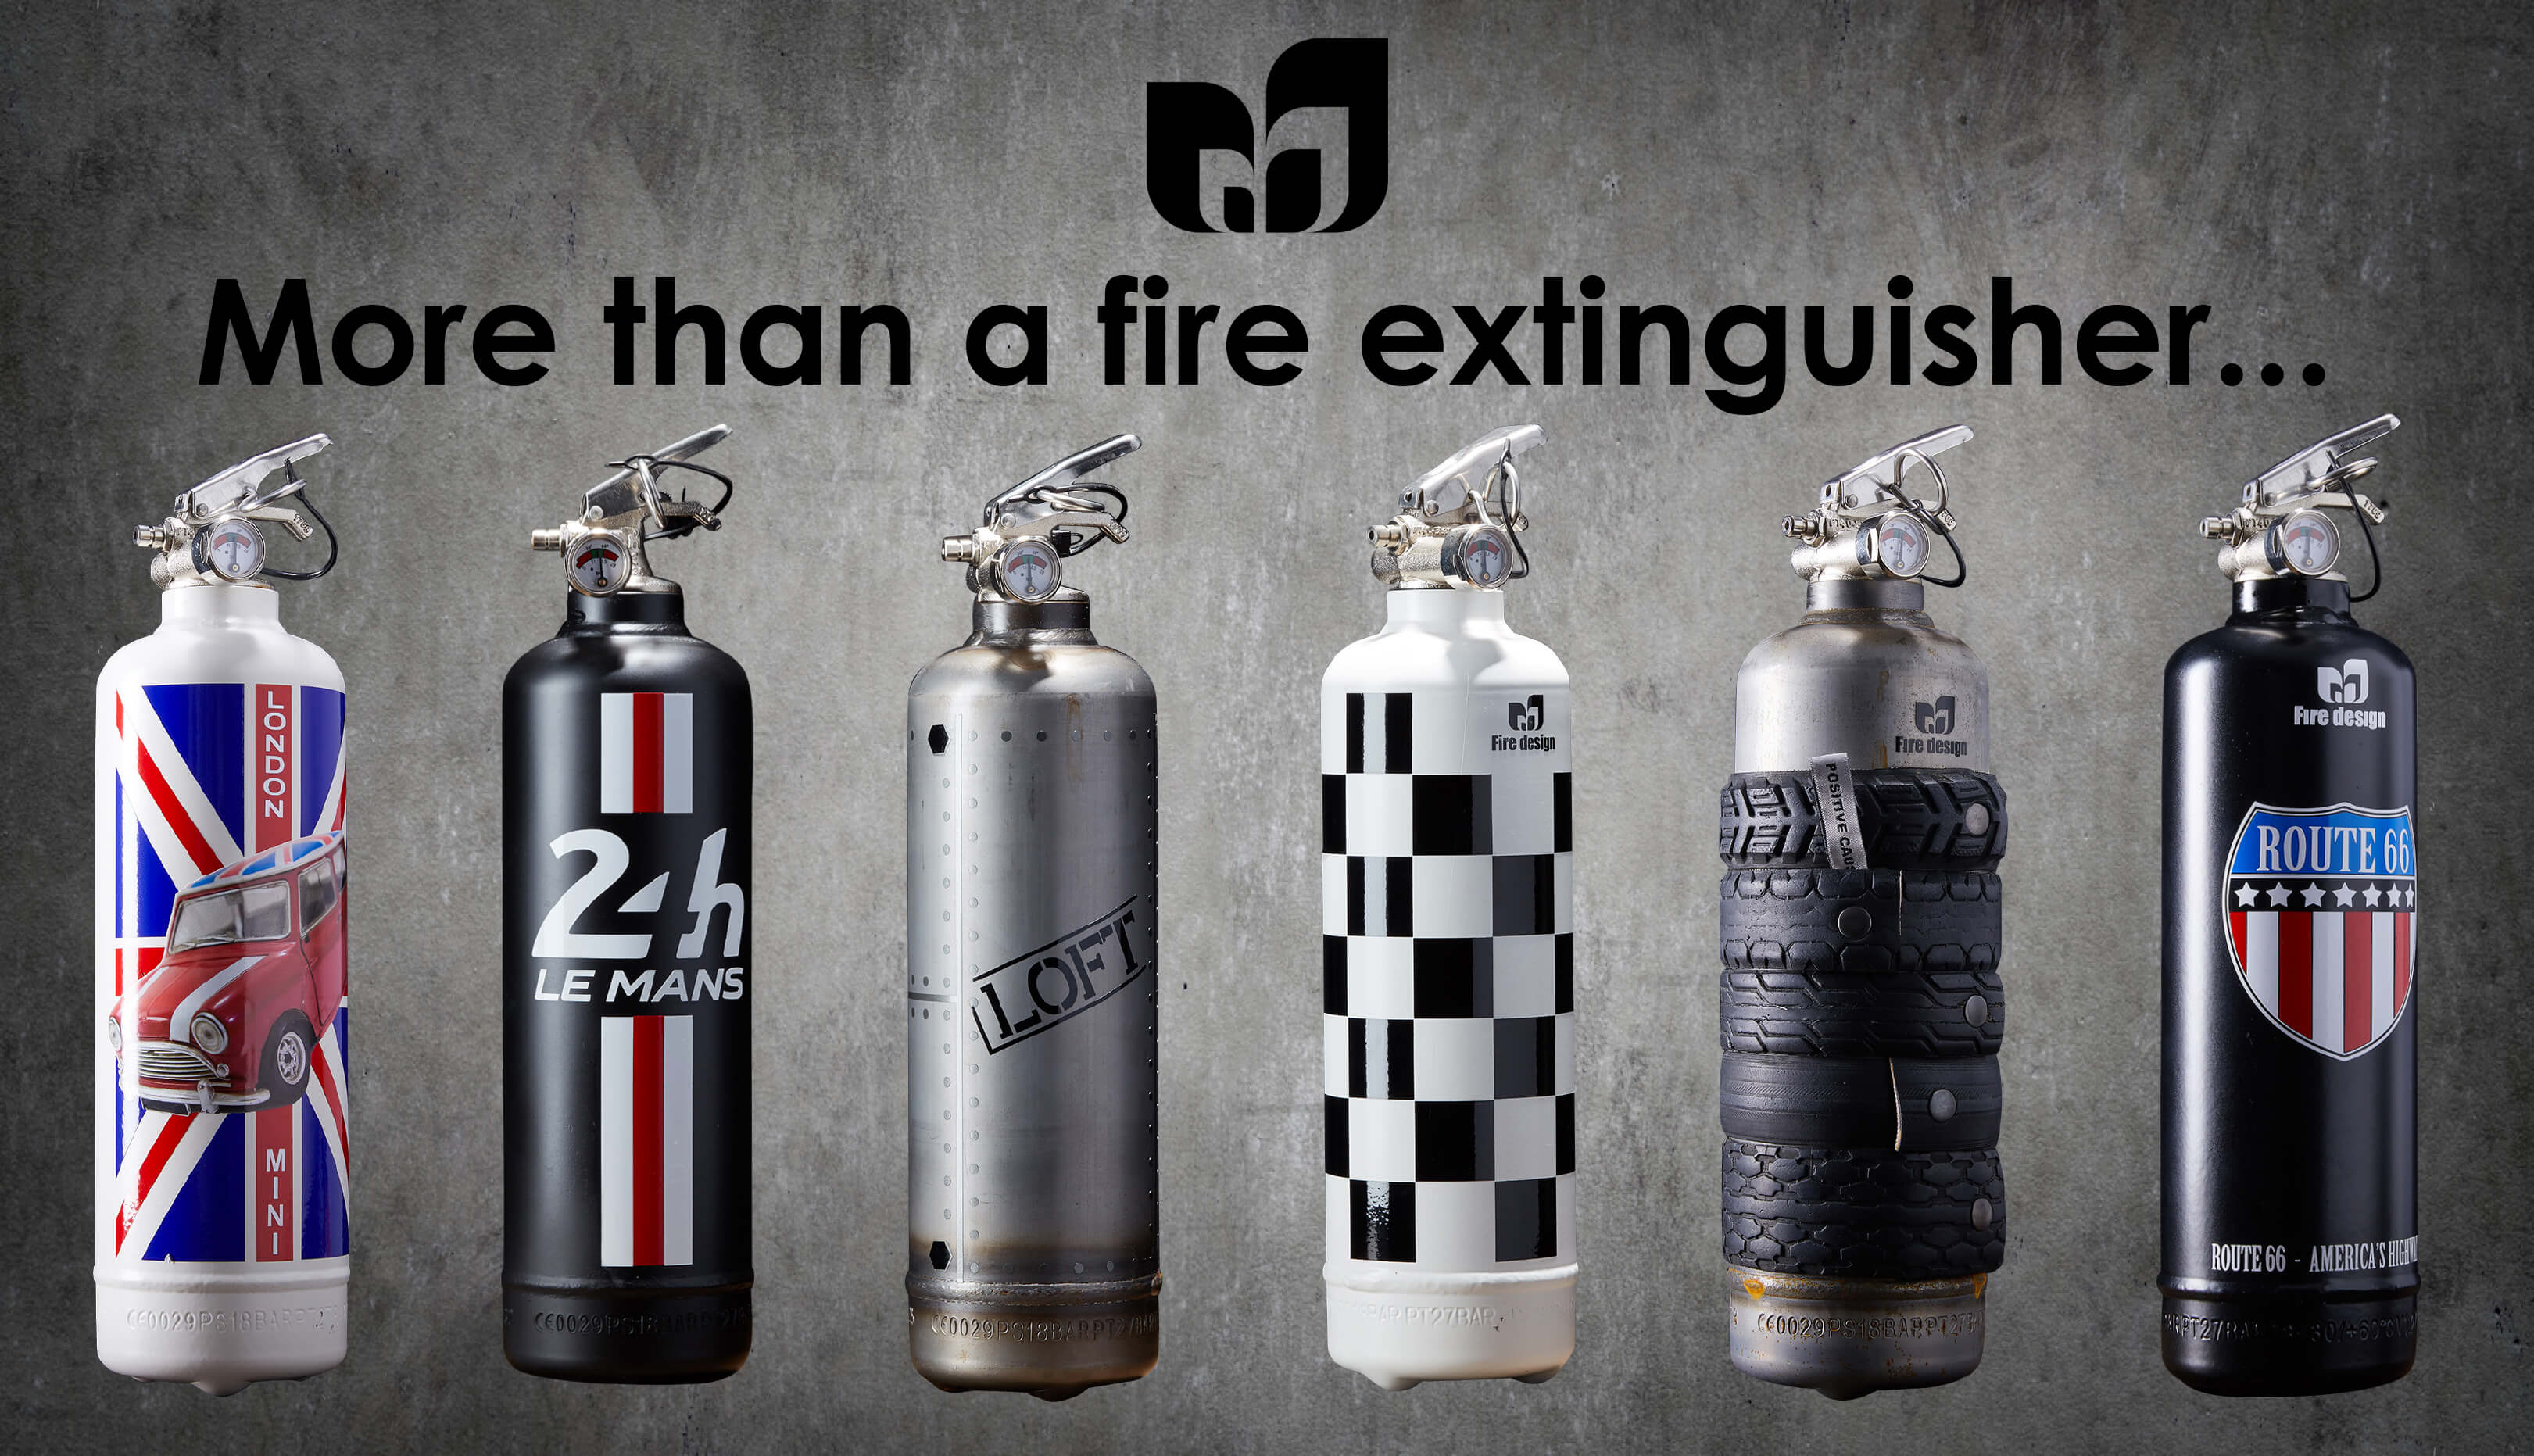 more-than-a-fire-extinguisher-fire-design